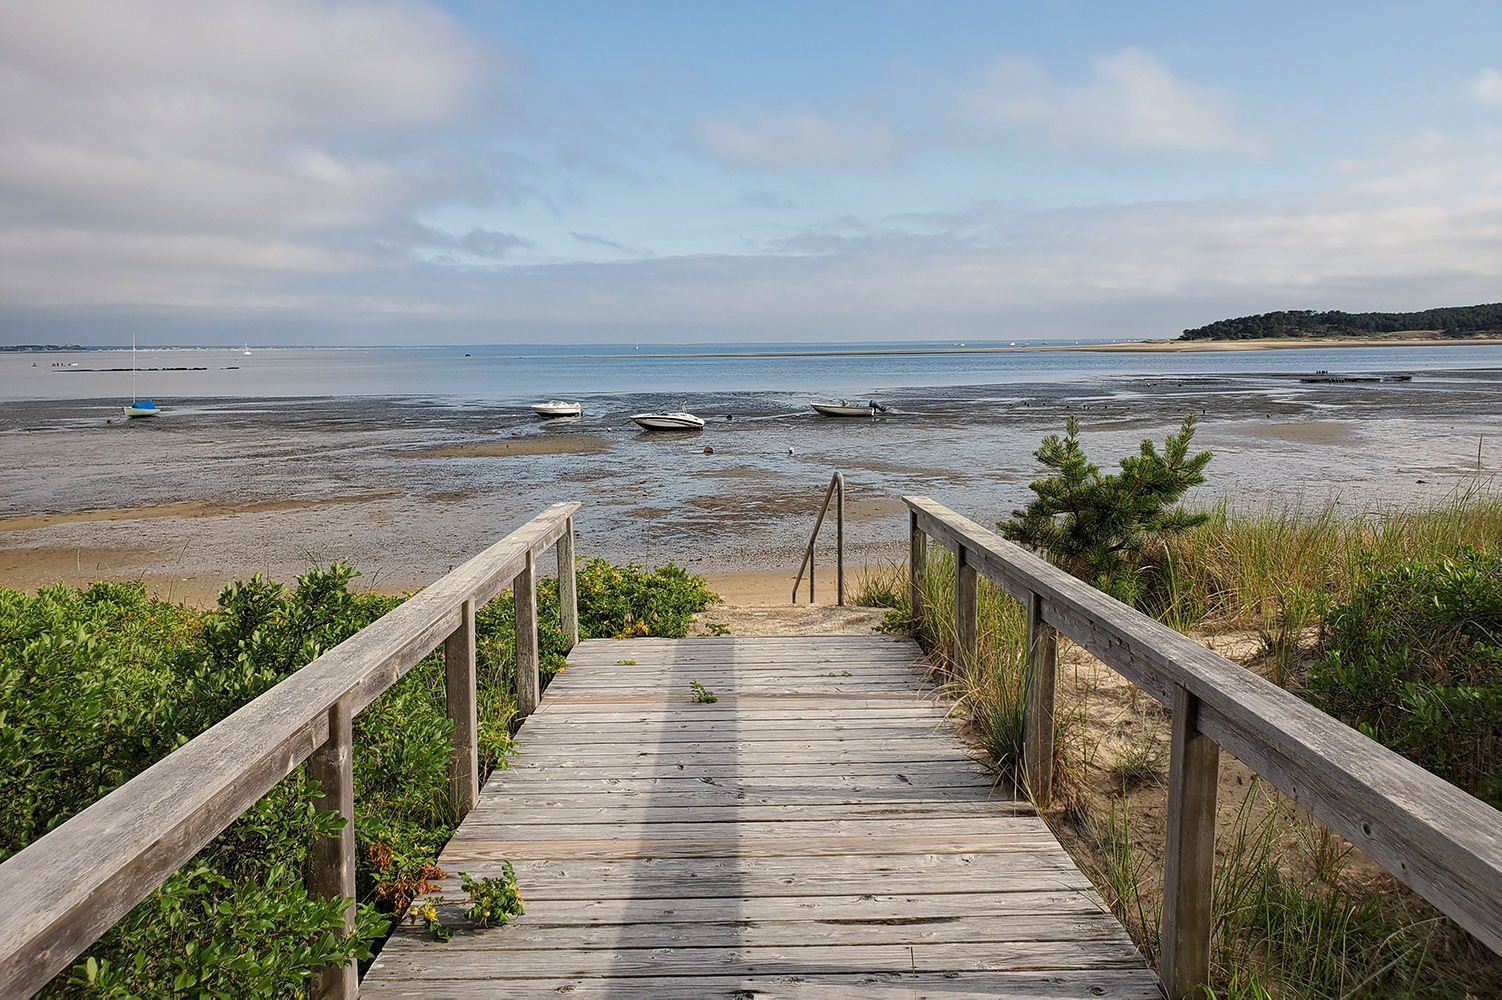 The boardwalk leading to the beach from Chequessett Yacht & Country Club boathouse wedding venue